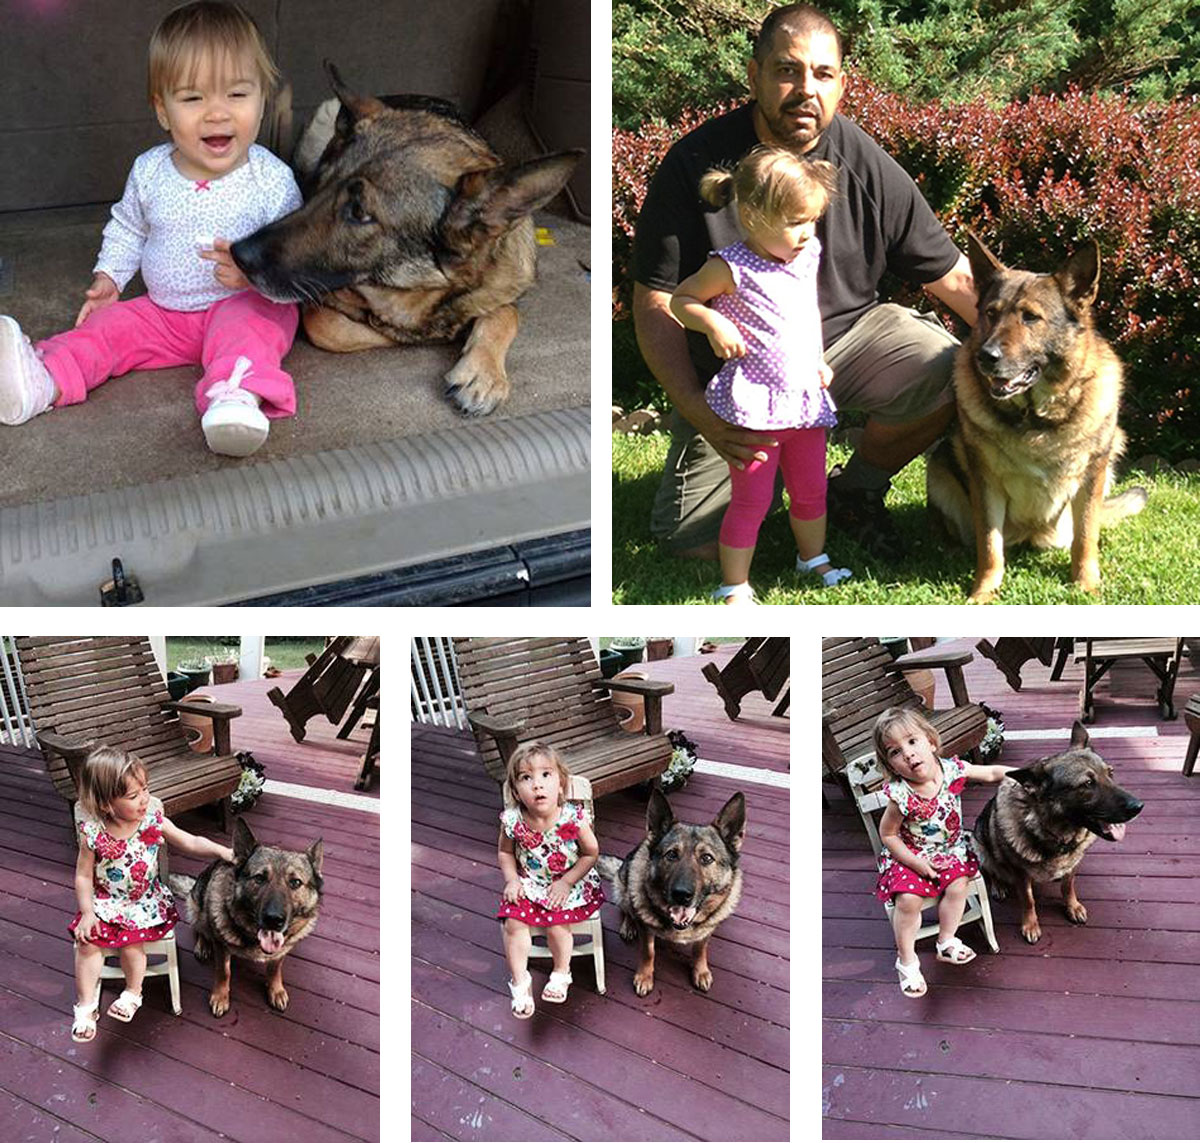 Protection Dog and Toddler - Frenchtown, NJ - Pro Canine Center